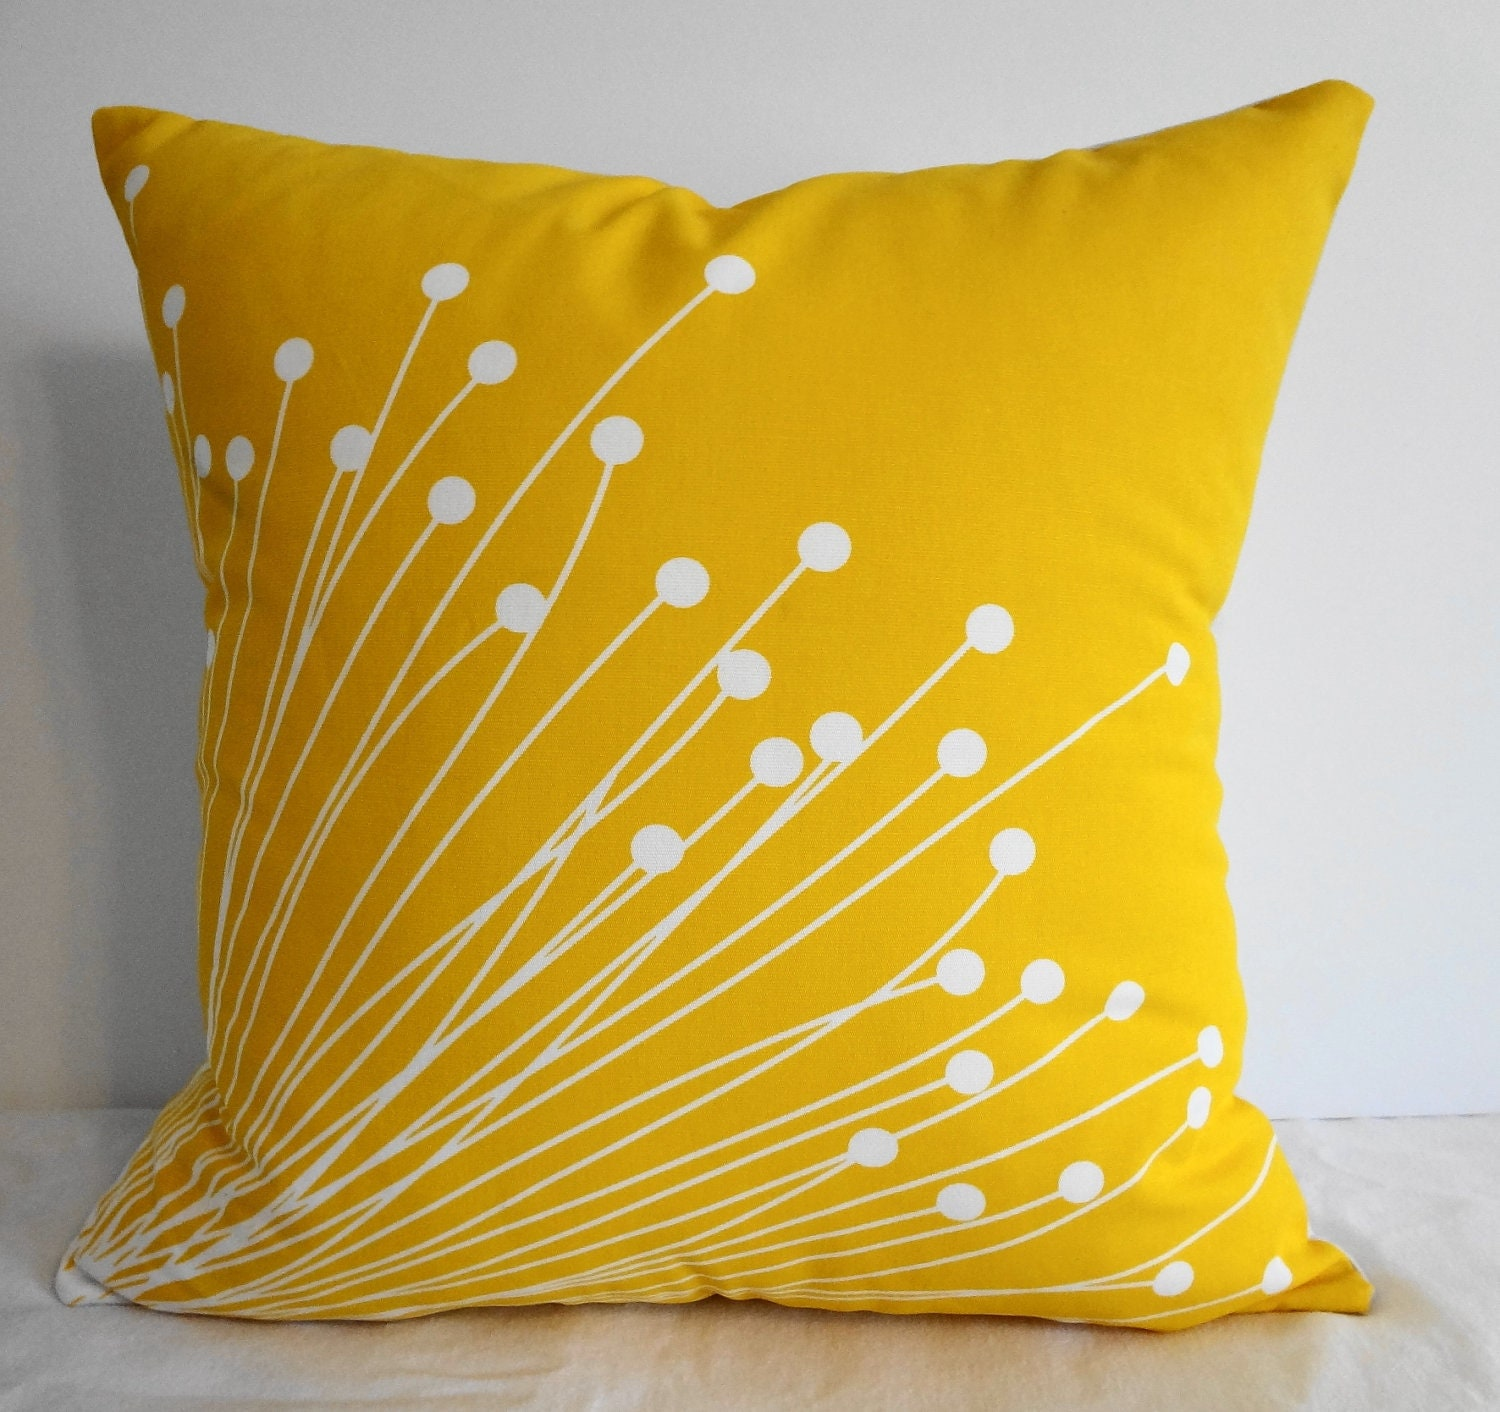 Throw Pillow Yellow : Starburst Yellow Pillow Covers Decorative Throw by pillows4fun